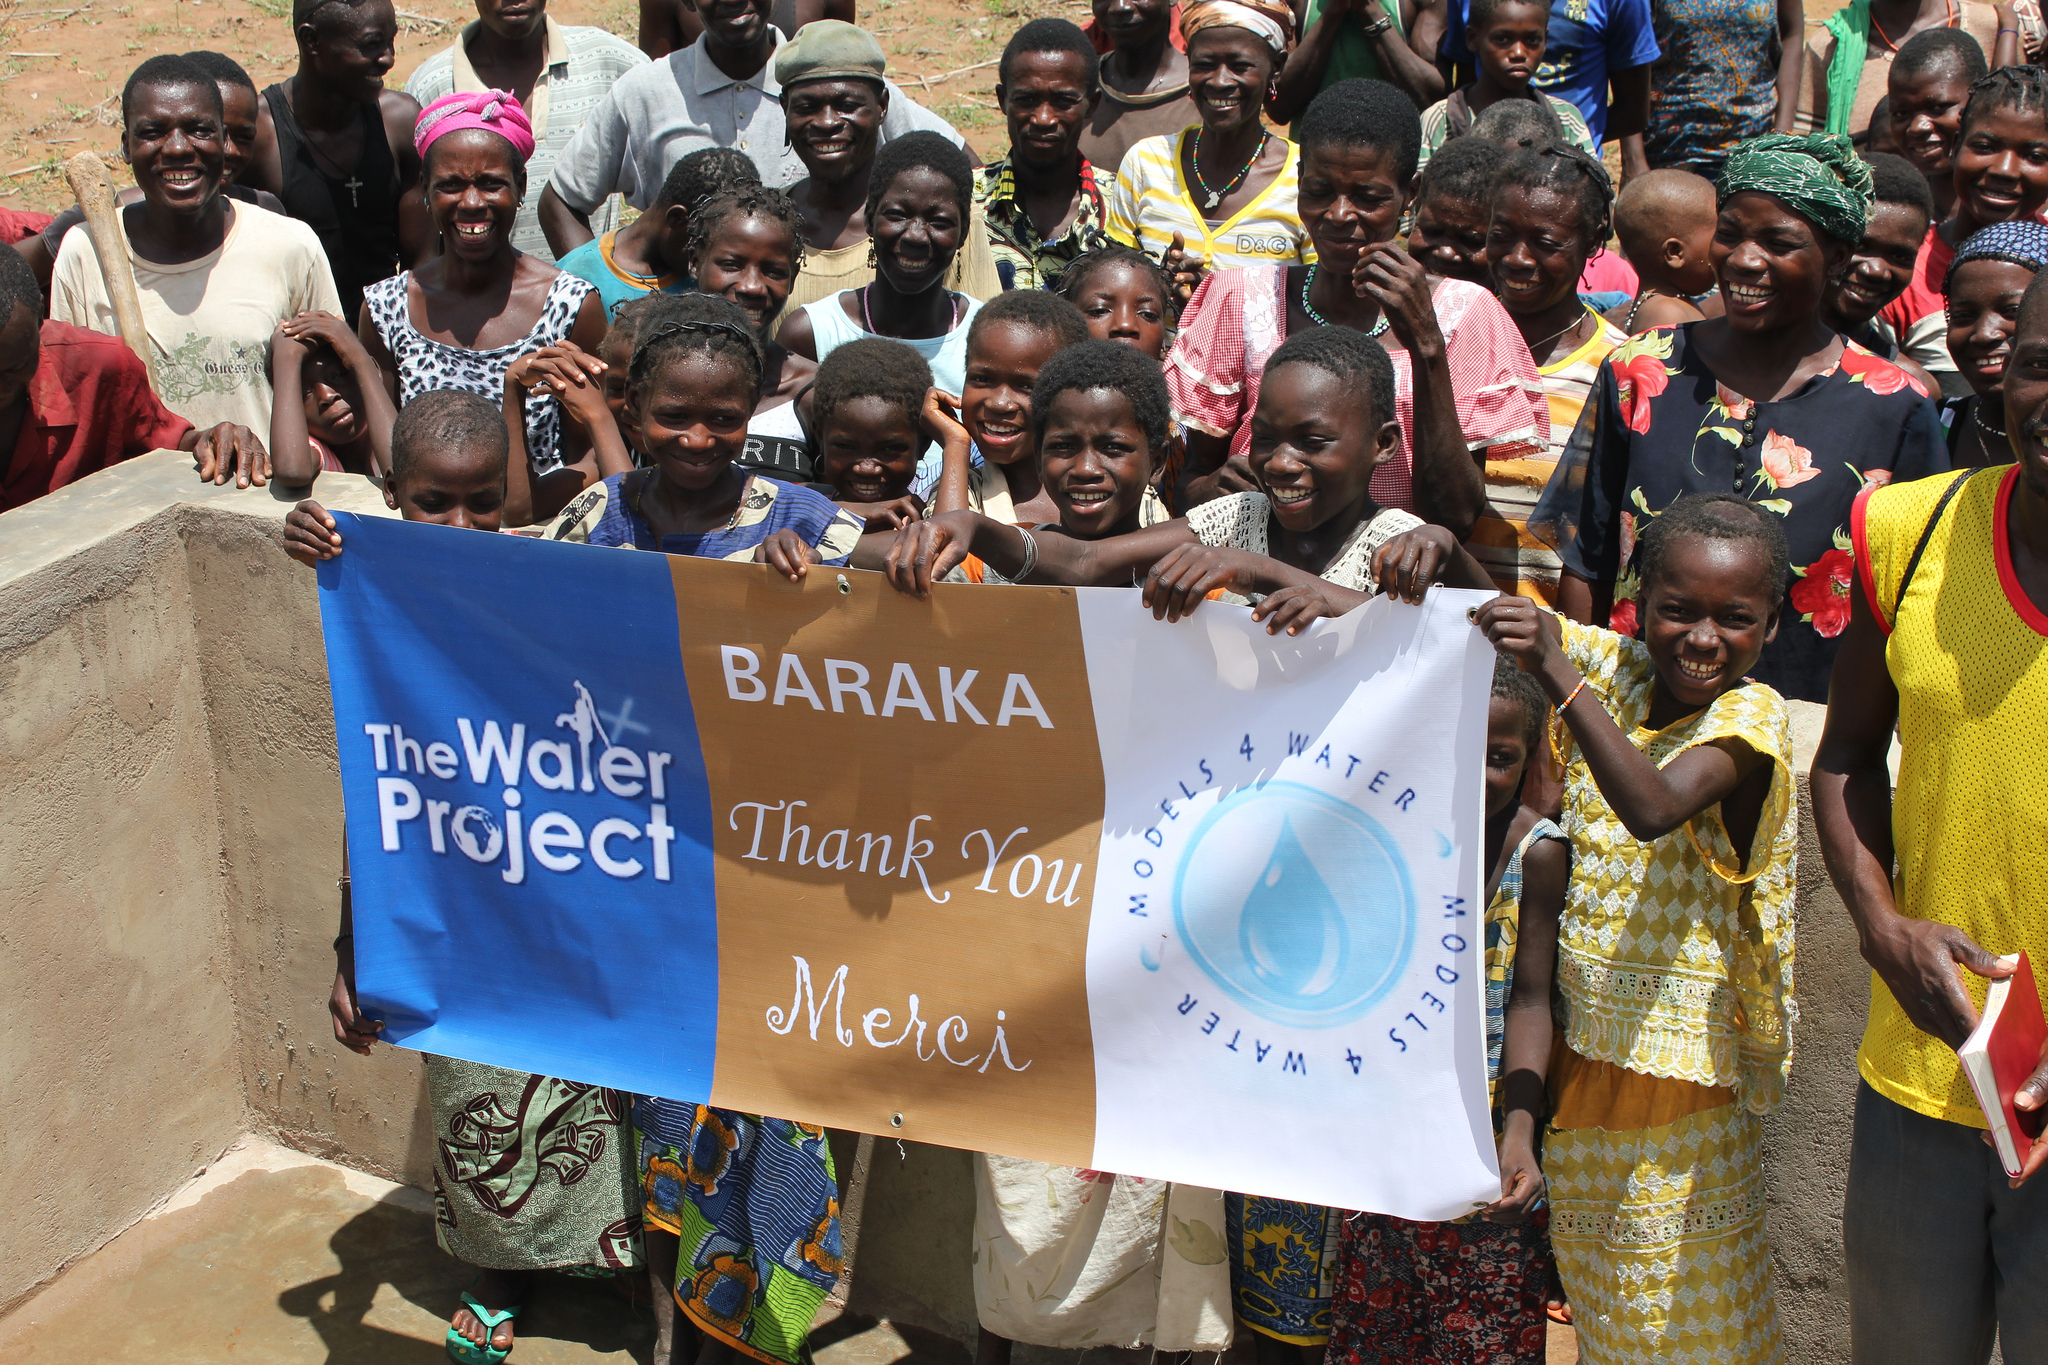 The Water Project : 7449329344_c6769d0086_k-2